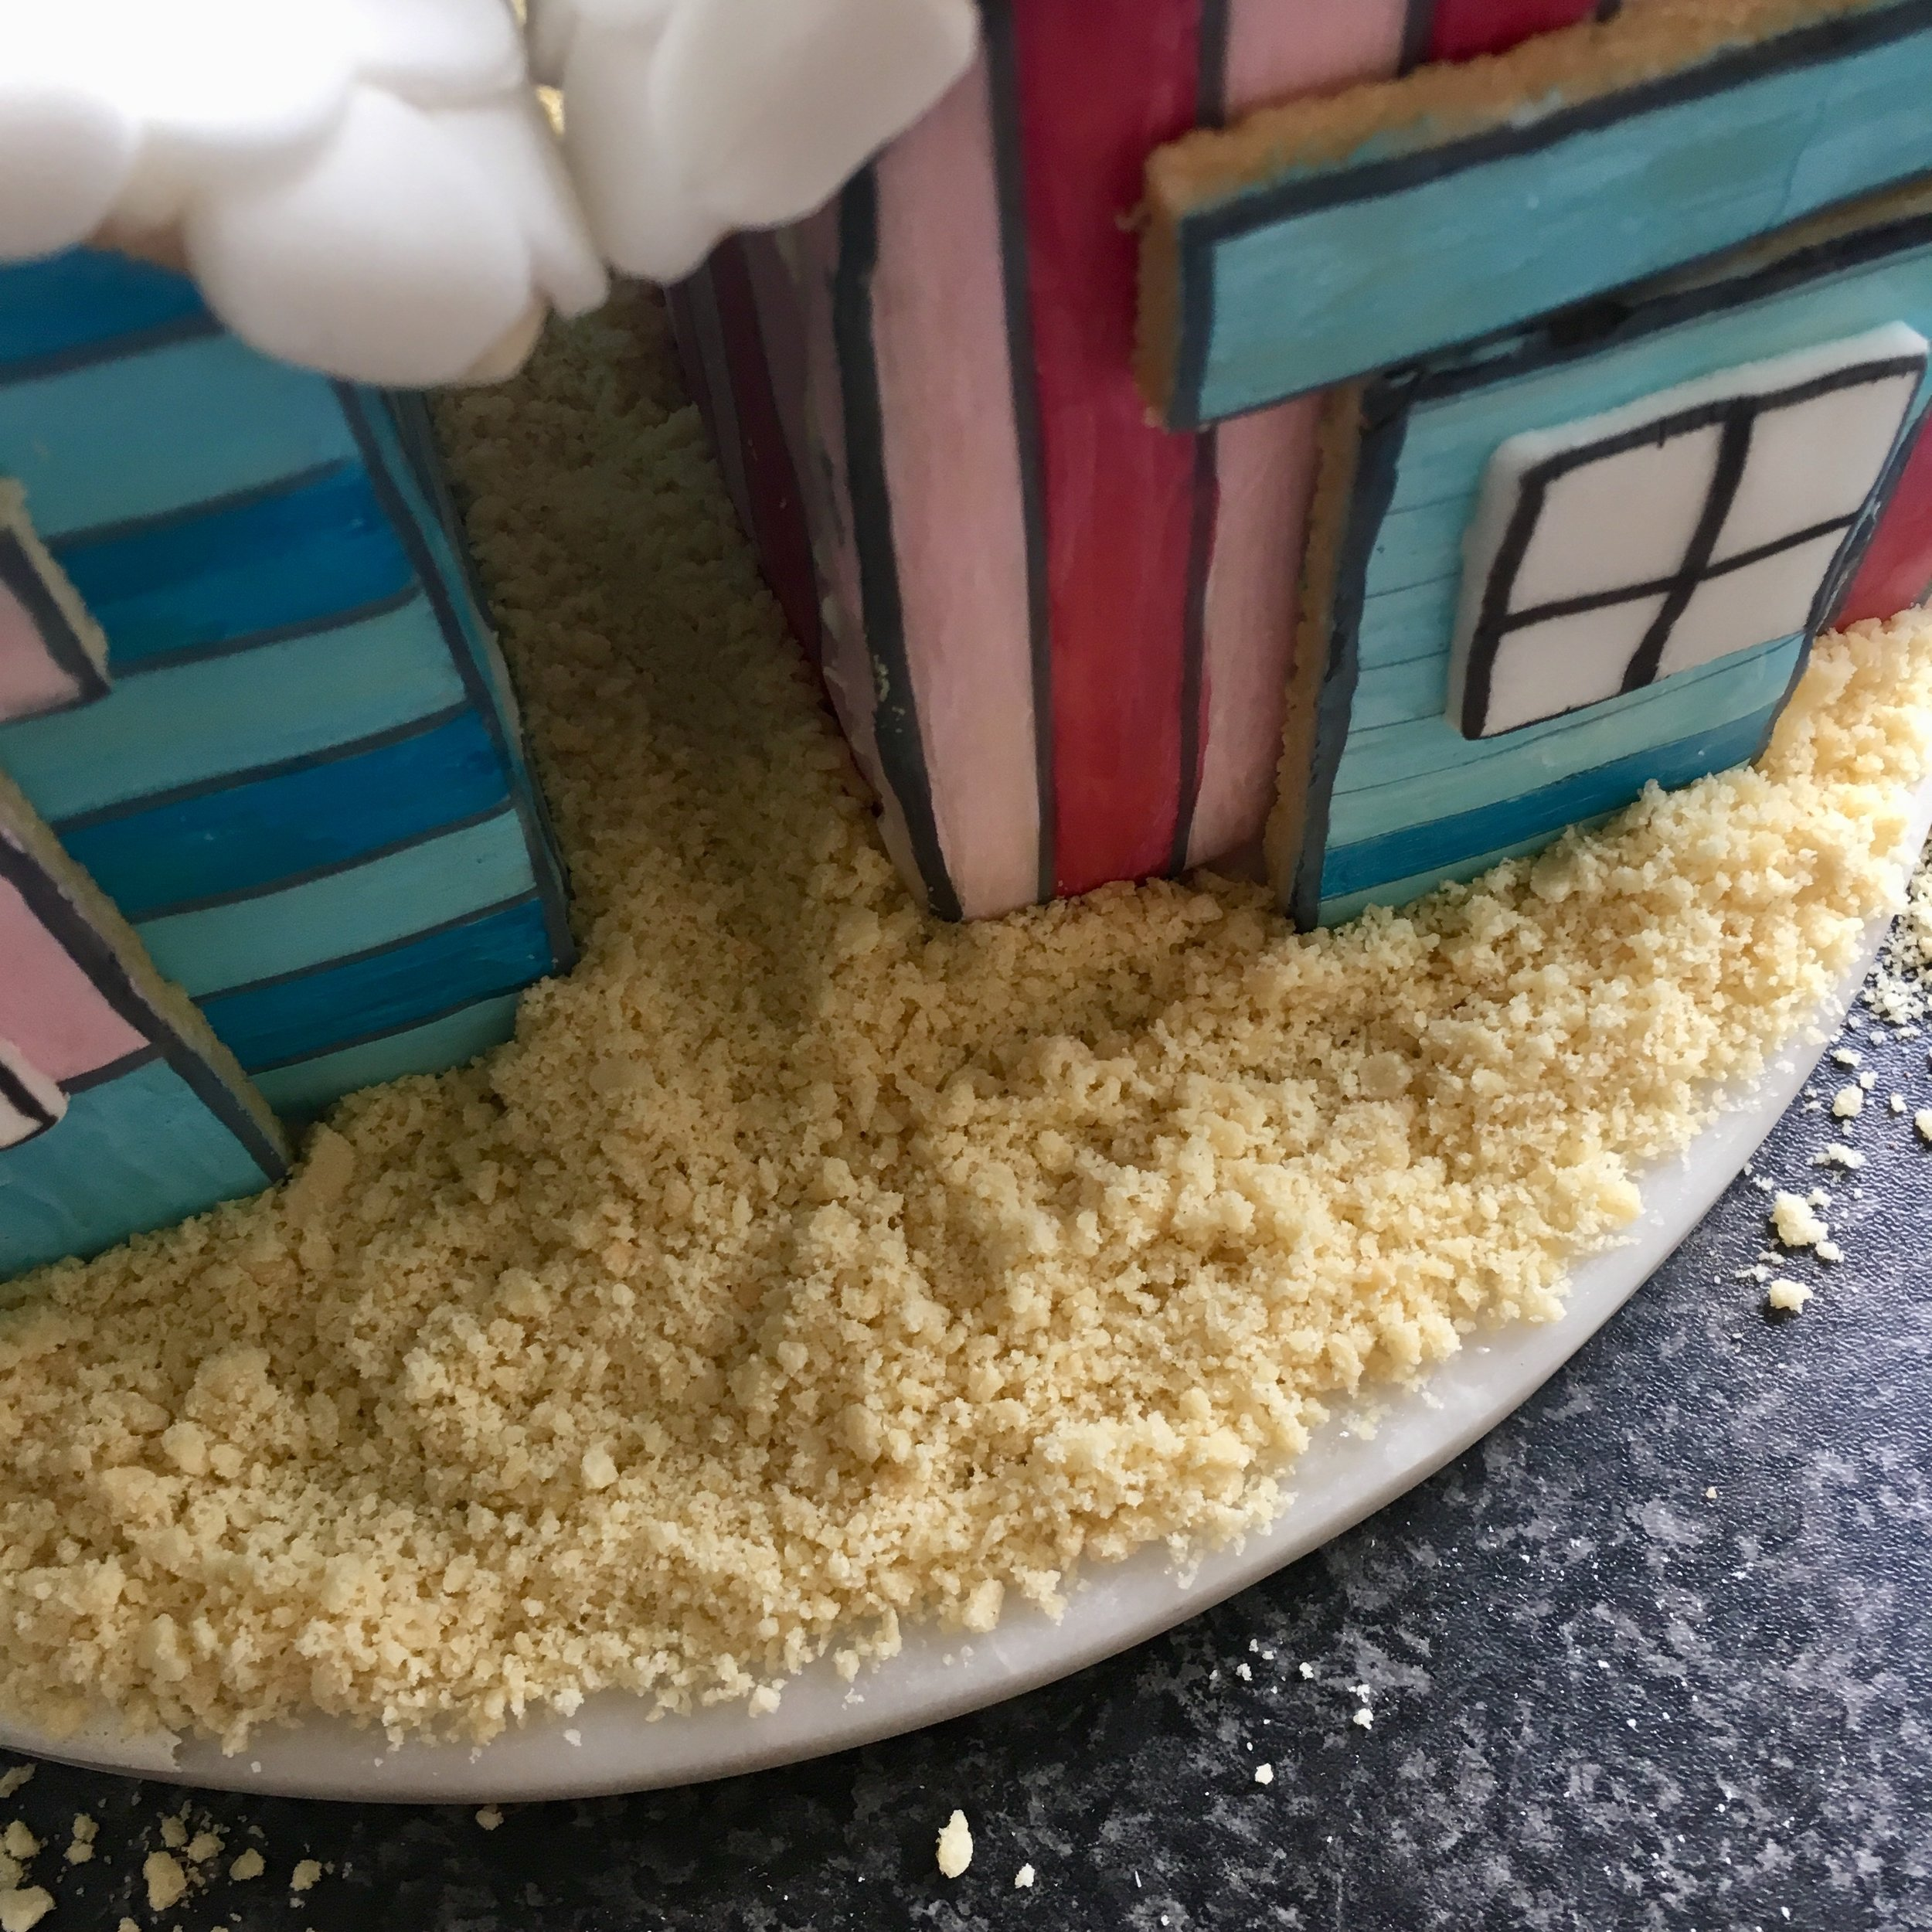 edible sand made from crushed up cookies